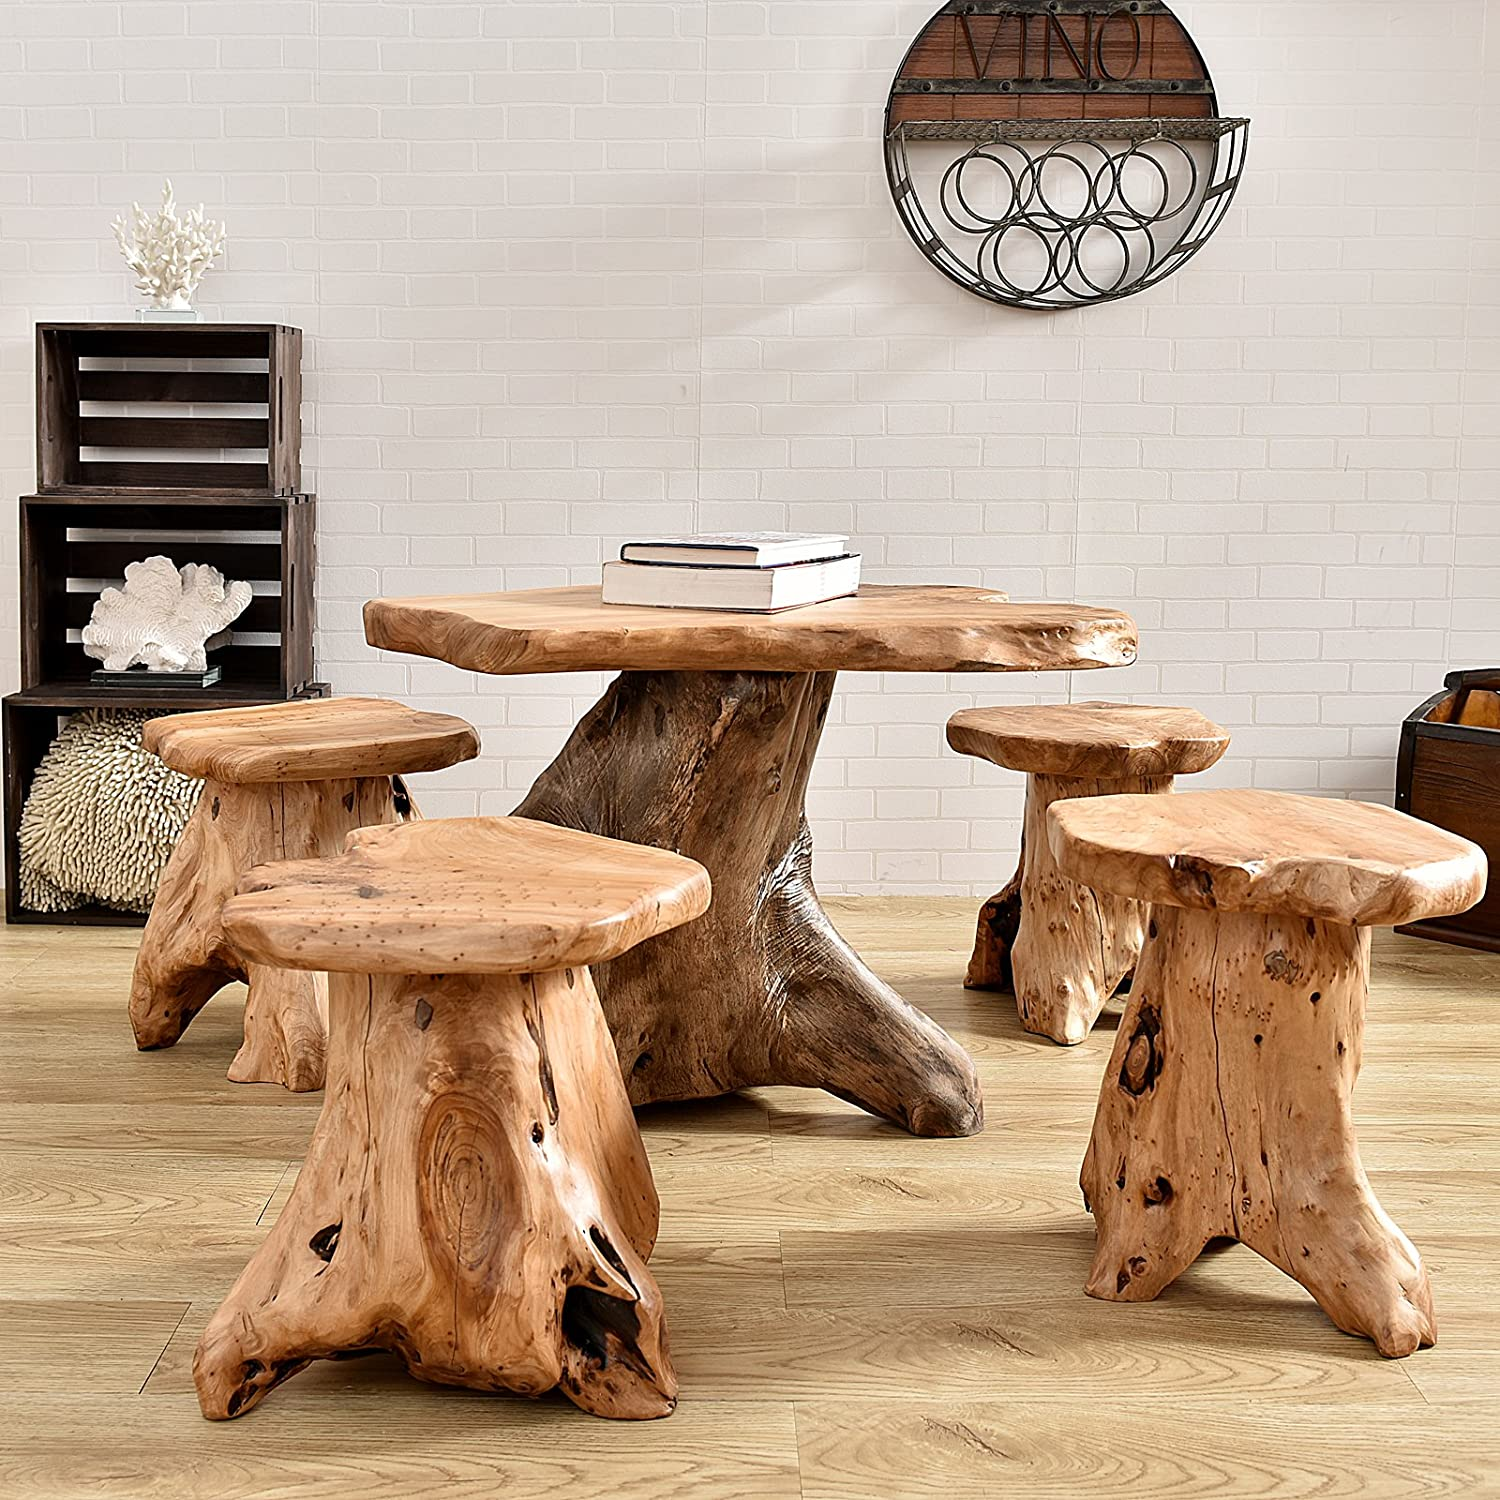 Tree Stump Stool - Amazon com welland outdoor indoor wood stump mushroom stools kitchen dining